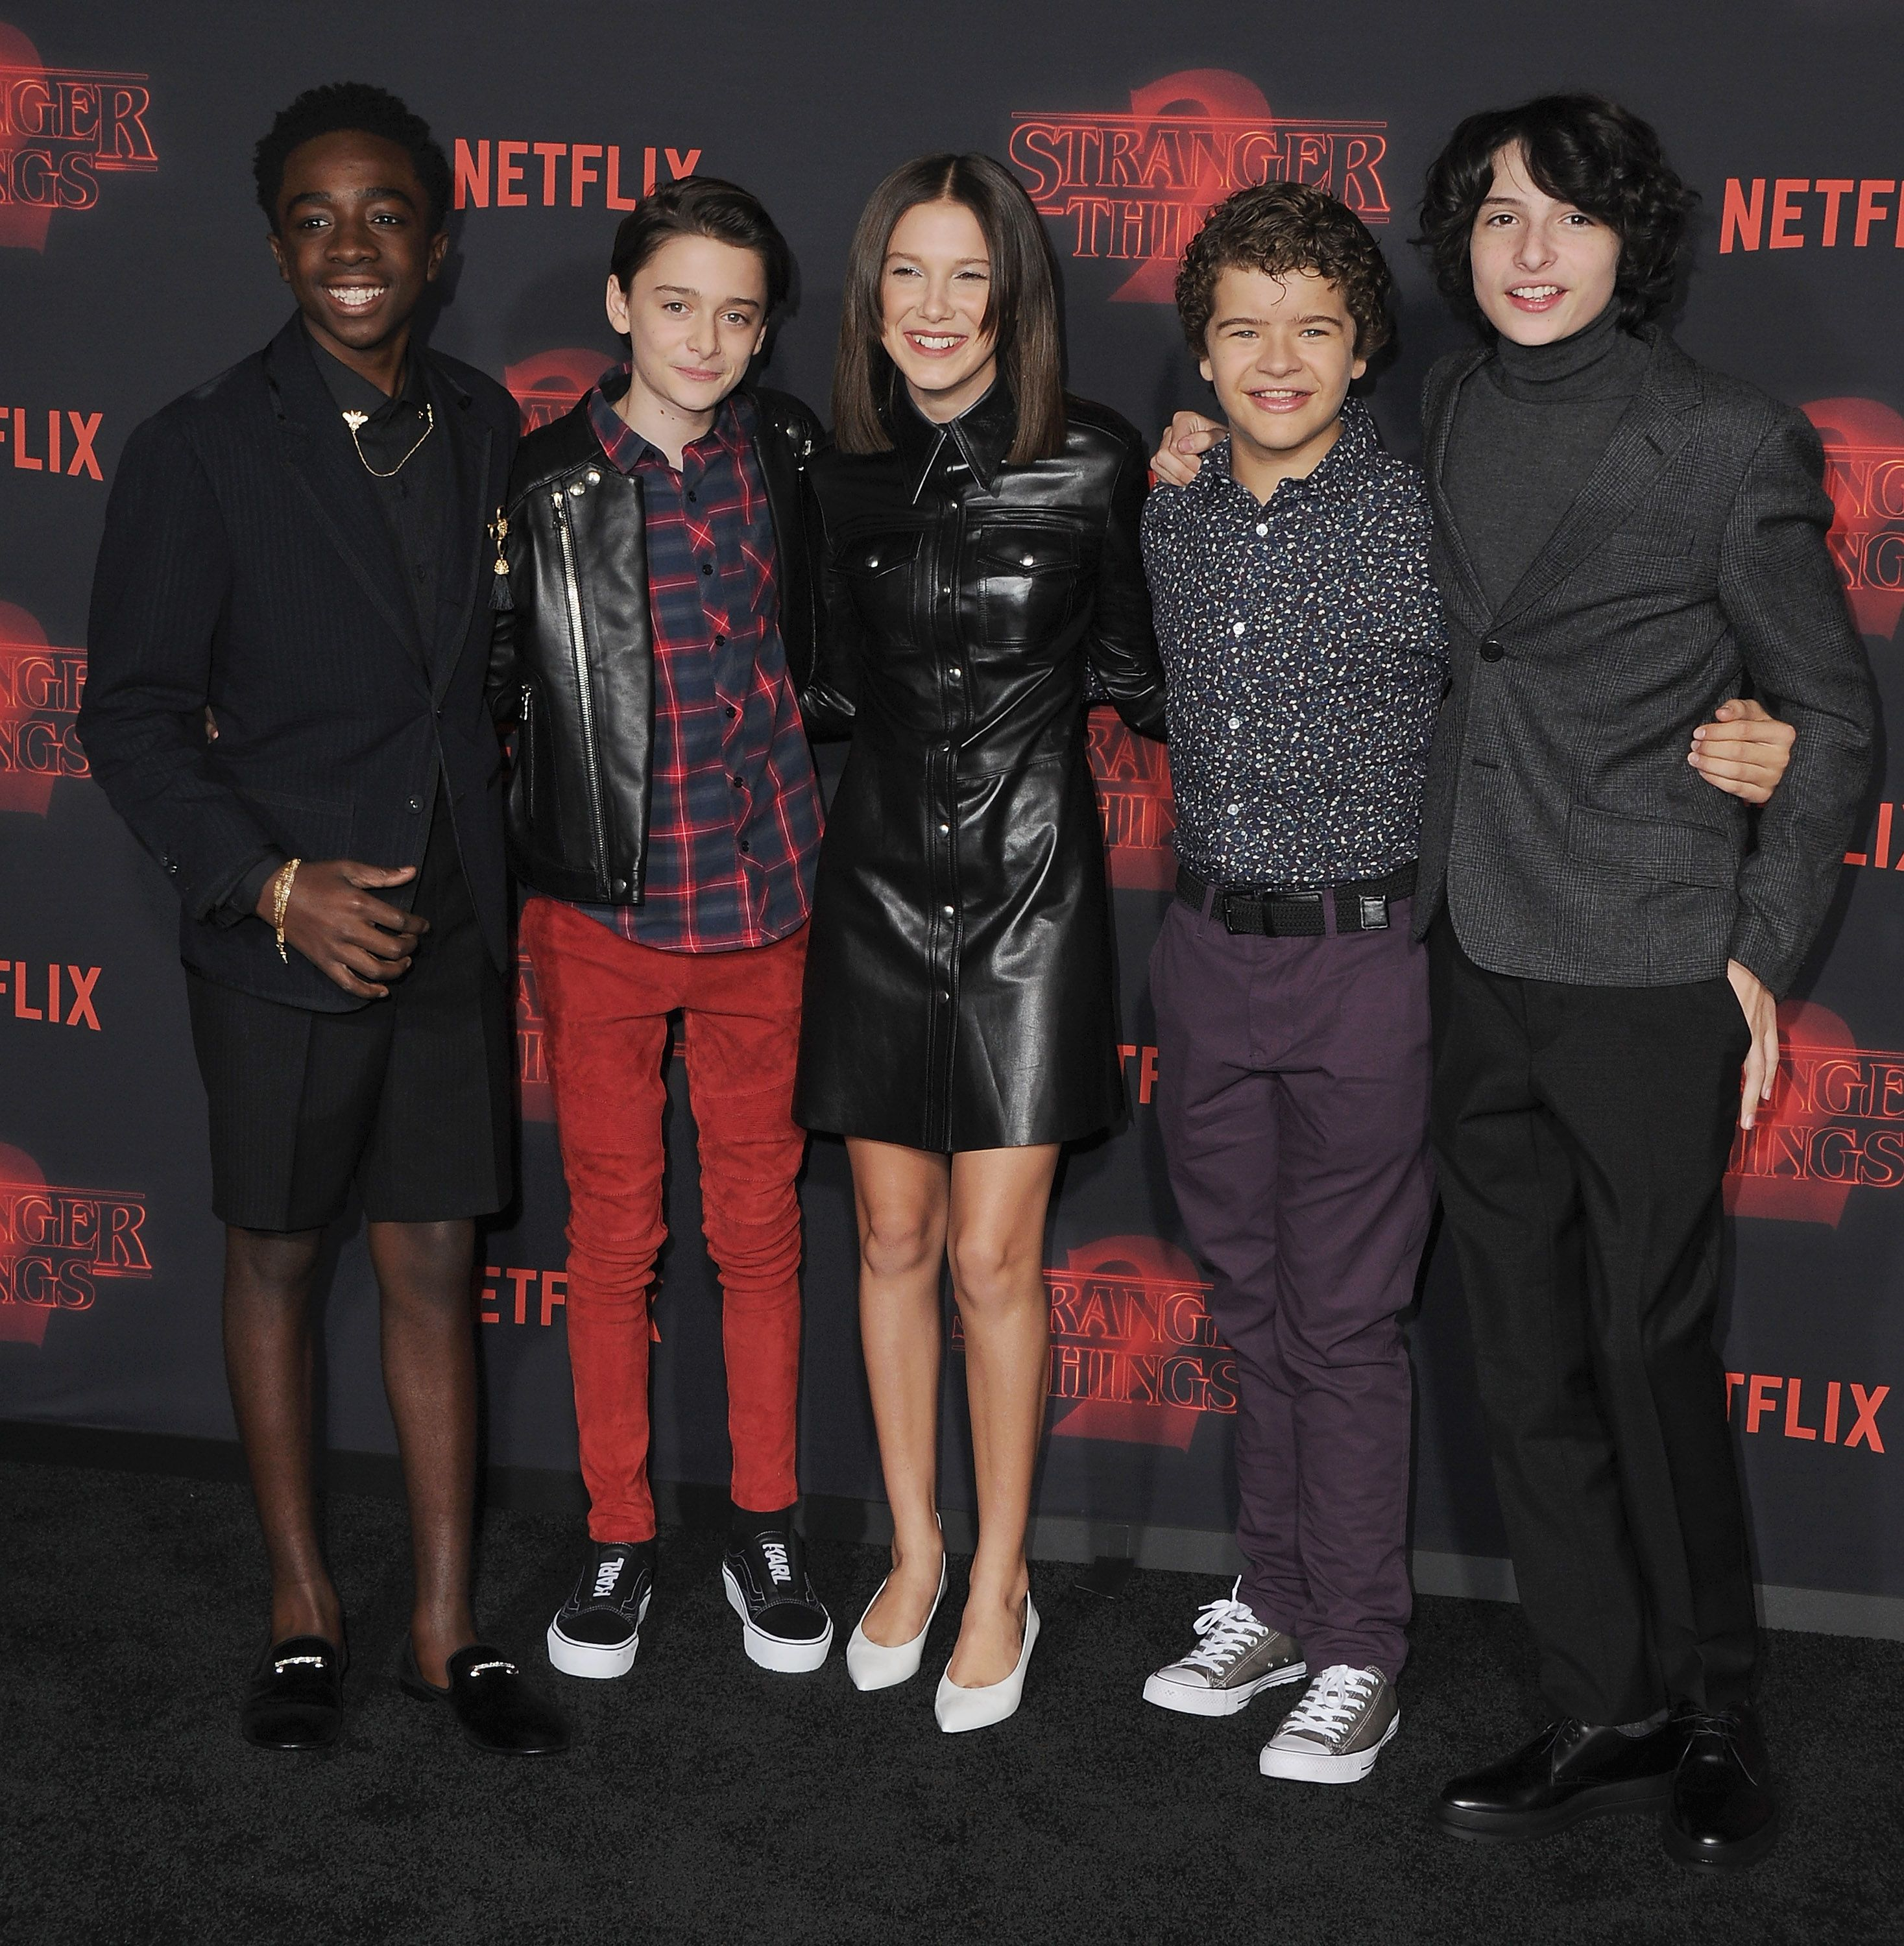 Stranger things cast heres how much the young stars get paid per stranger things cast heres how much the young stars get paid per episode m4hsunfo